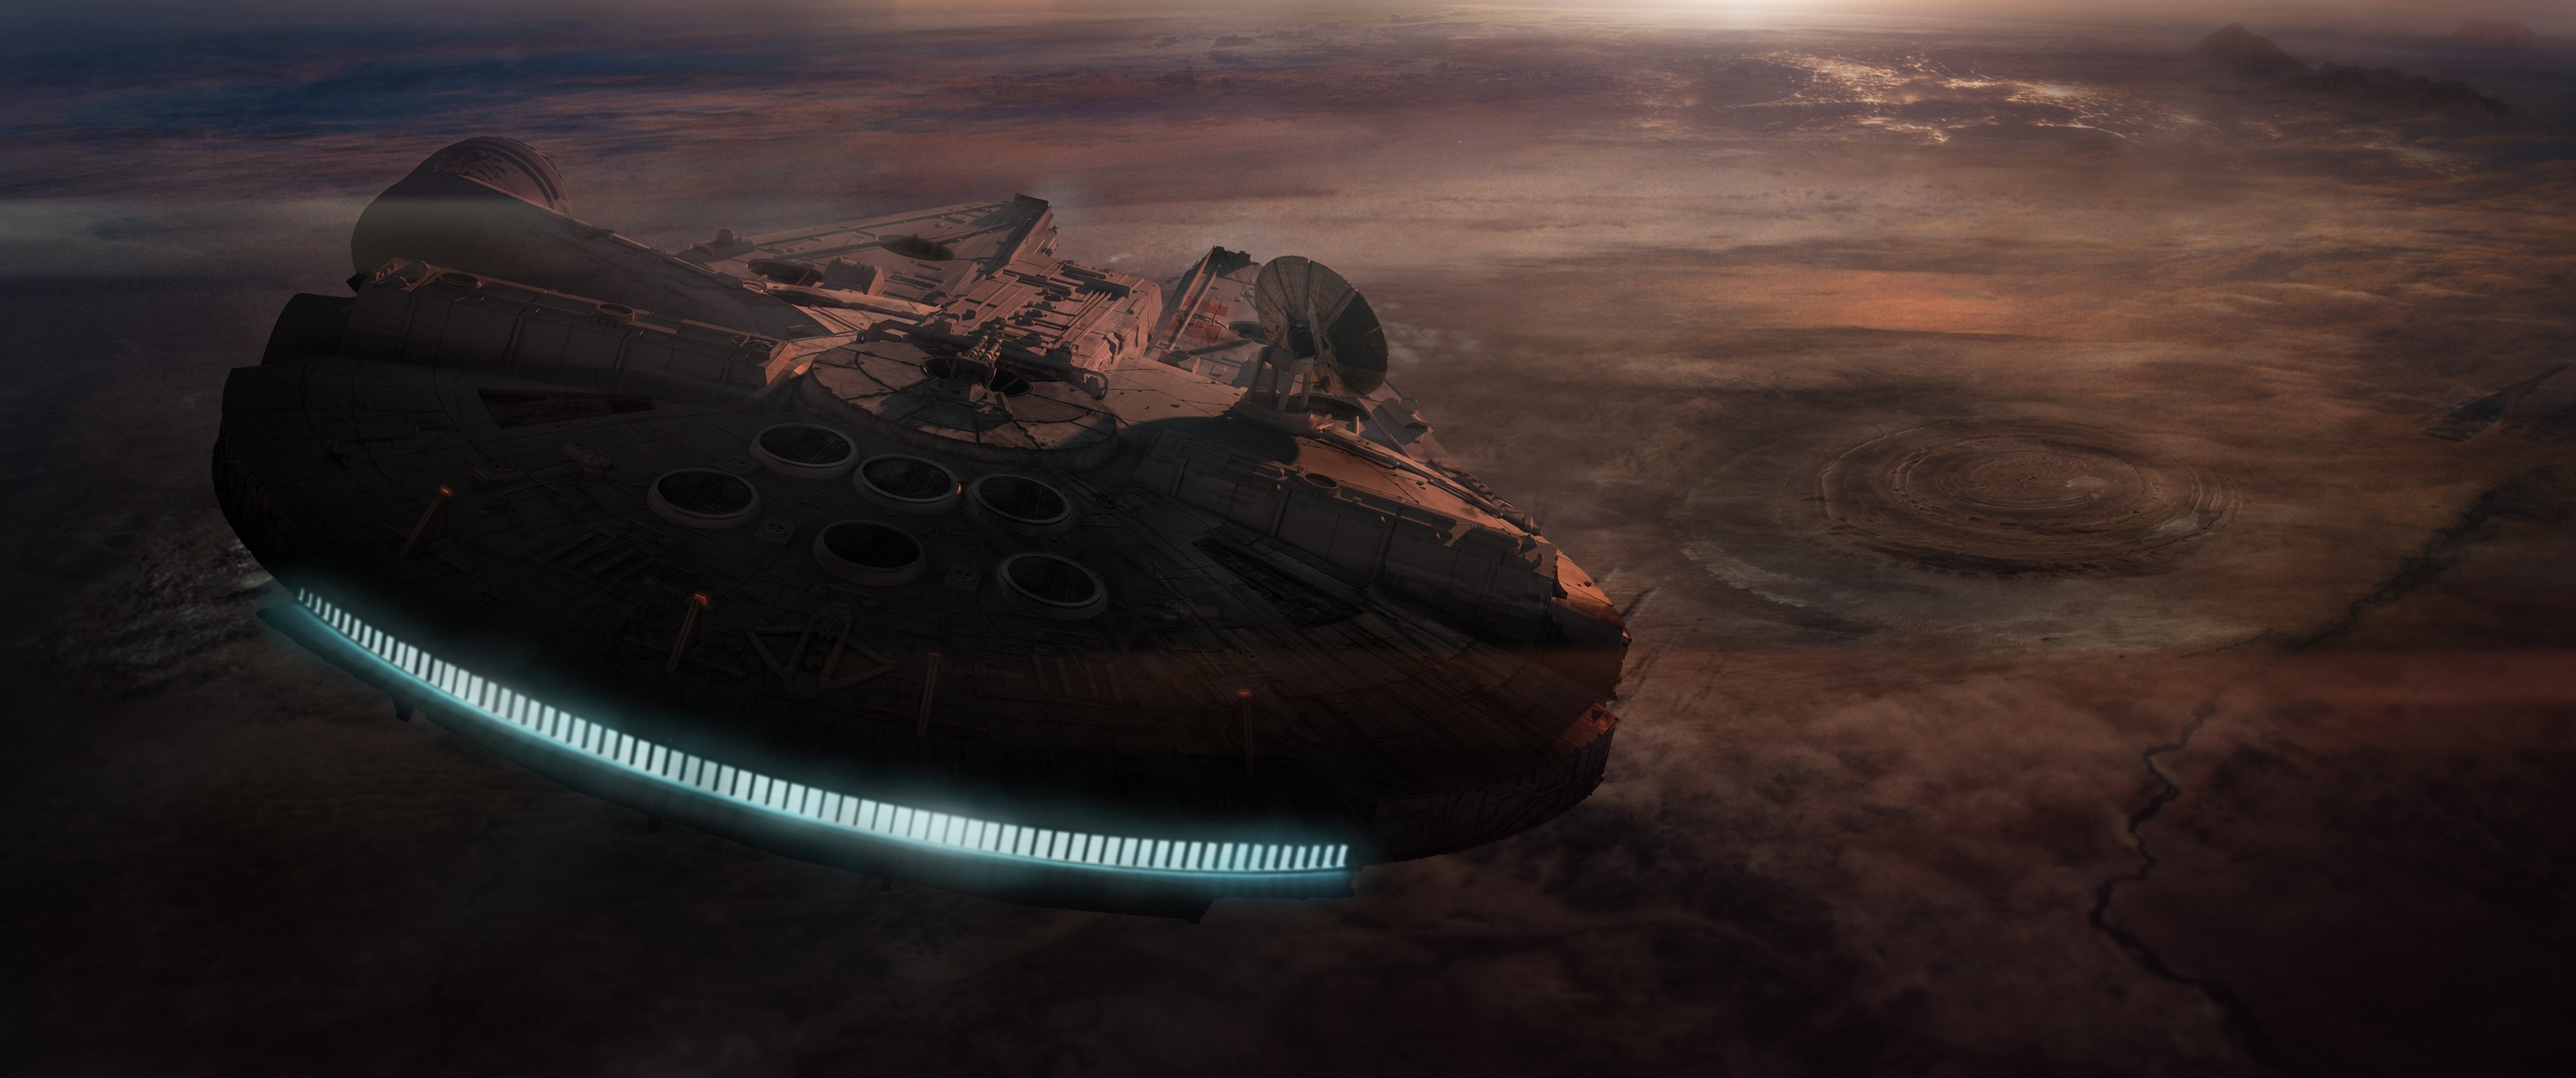 Star Wars, Millennium Falcon Wallpapers HD / Desktop and Mobile .